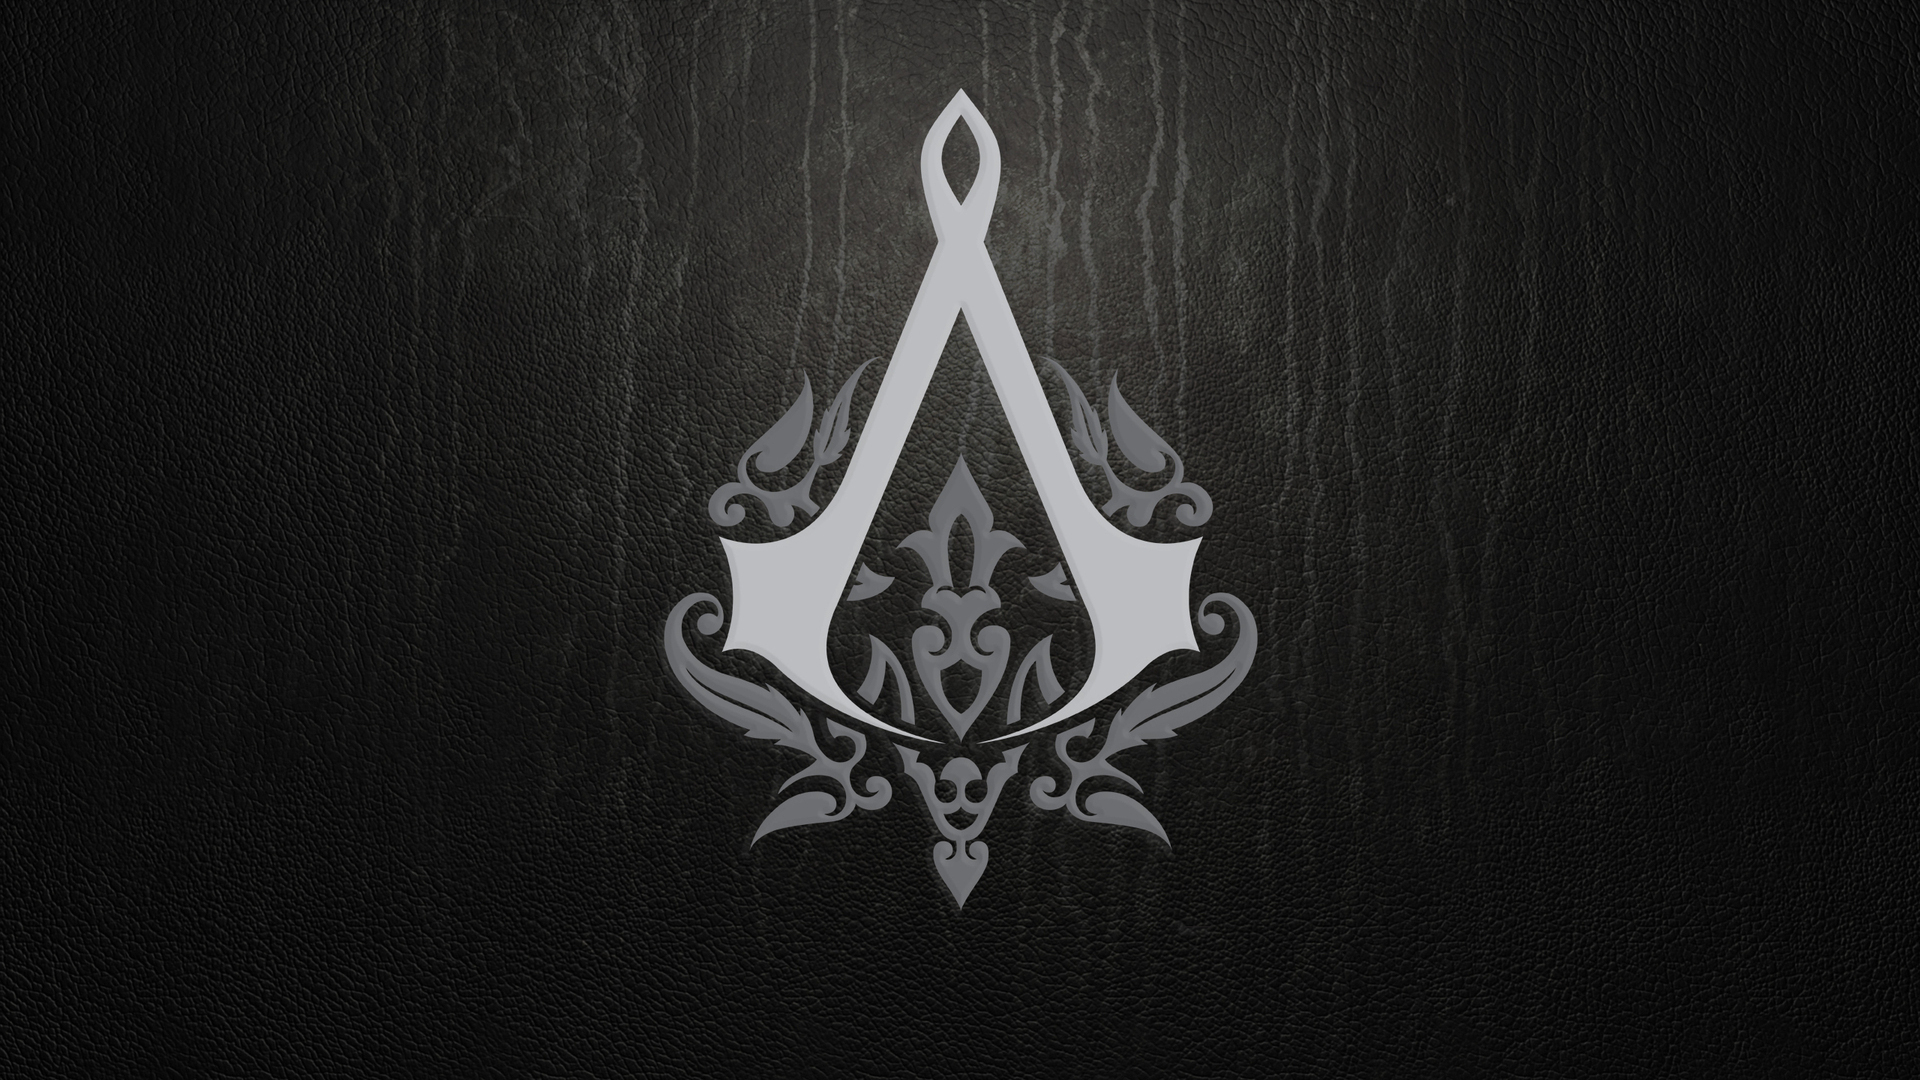 Free Download Assassins Creed Logo W 1920x1080 For Your Desktop